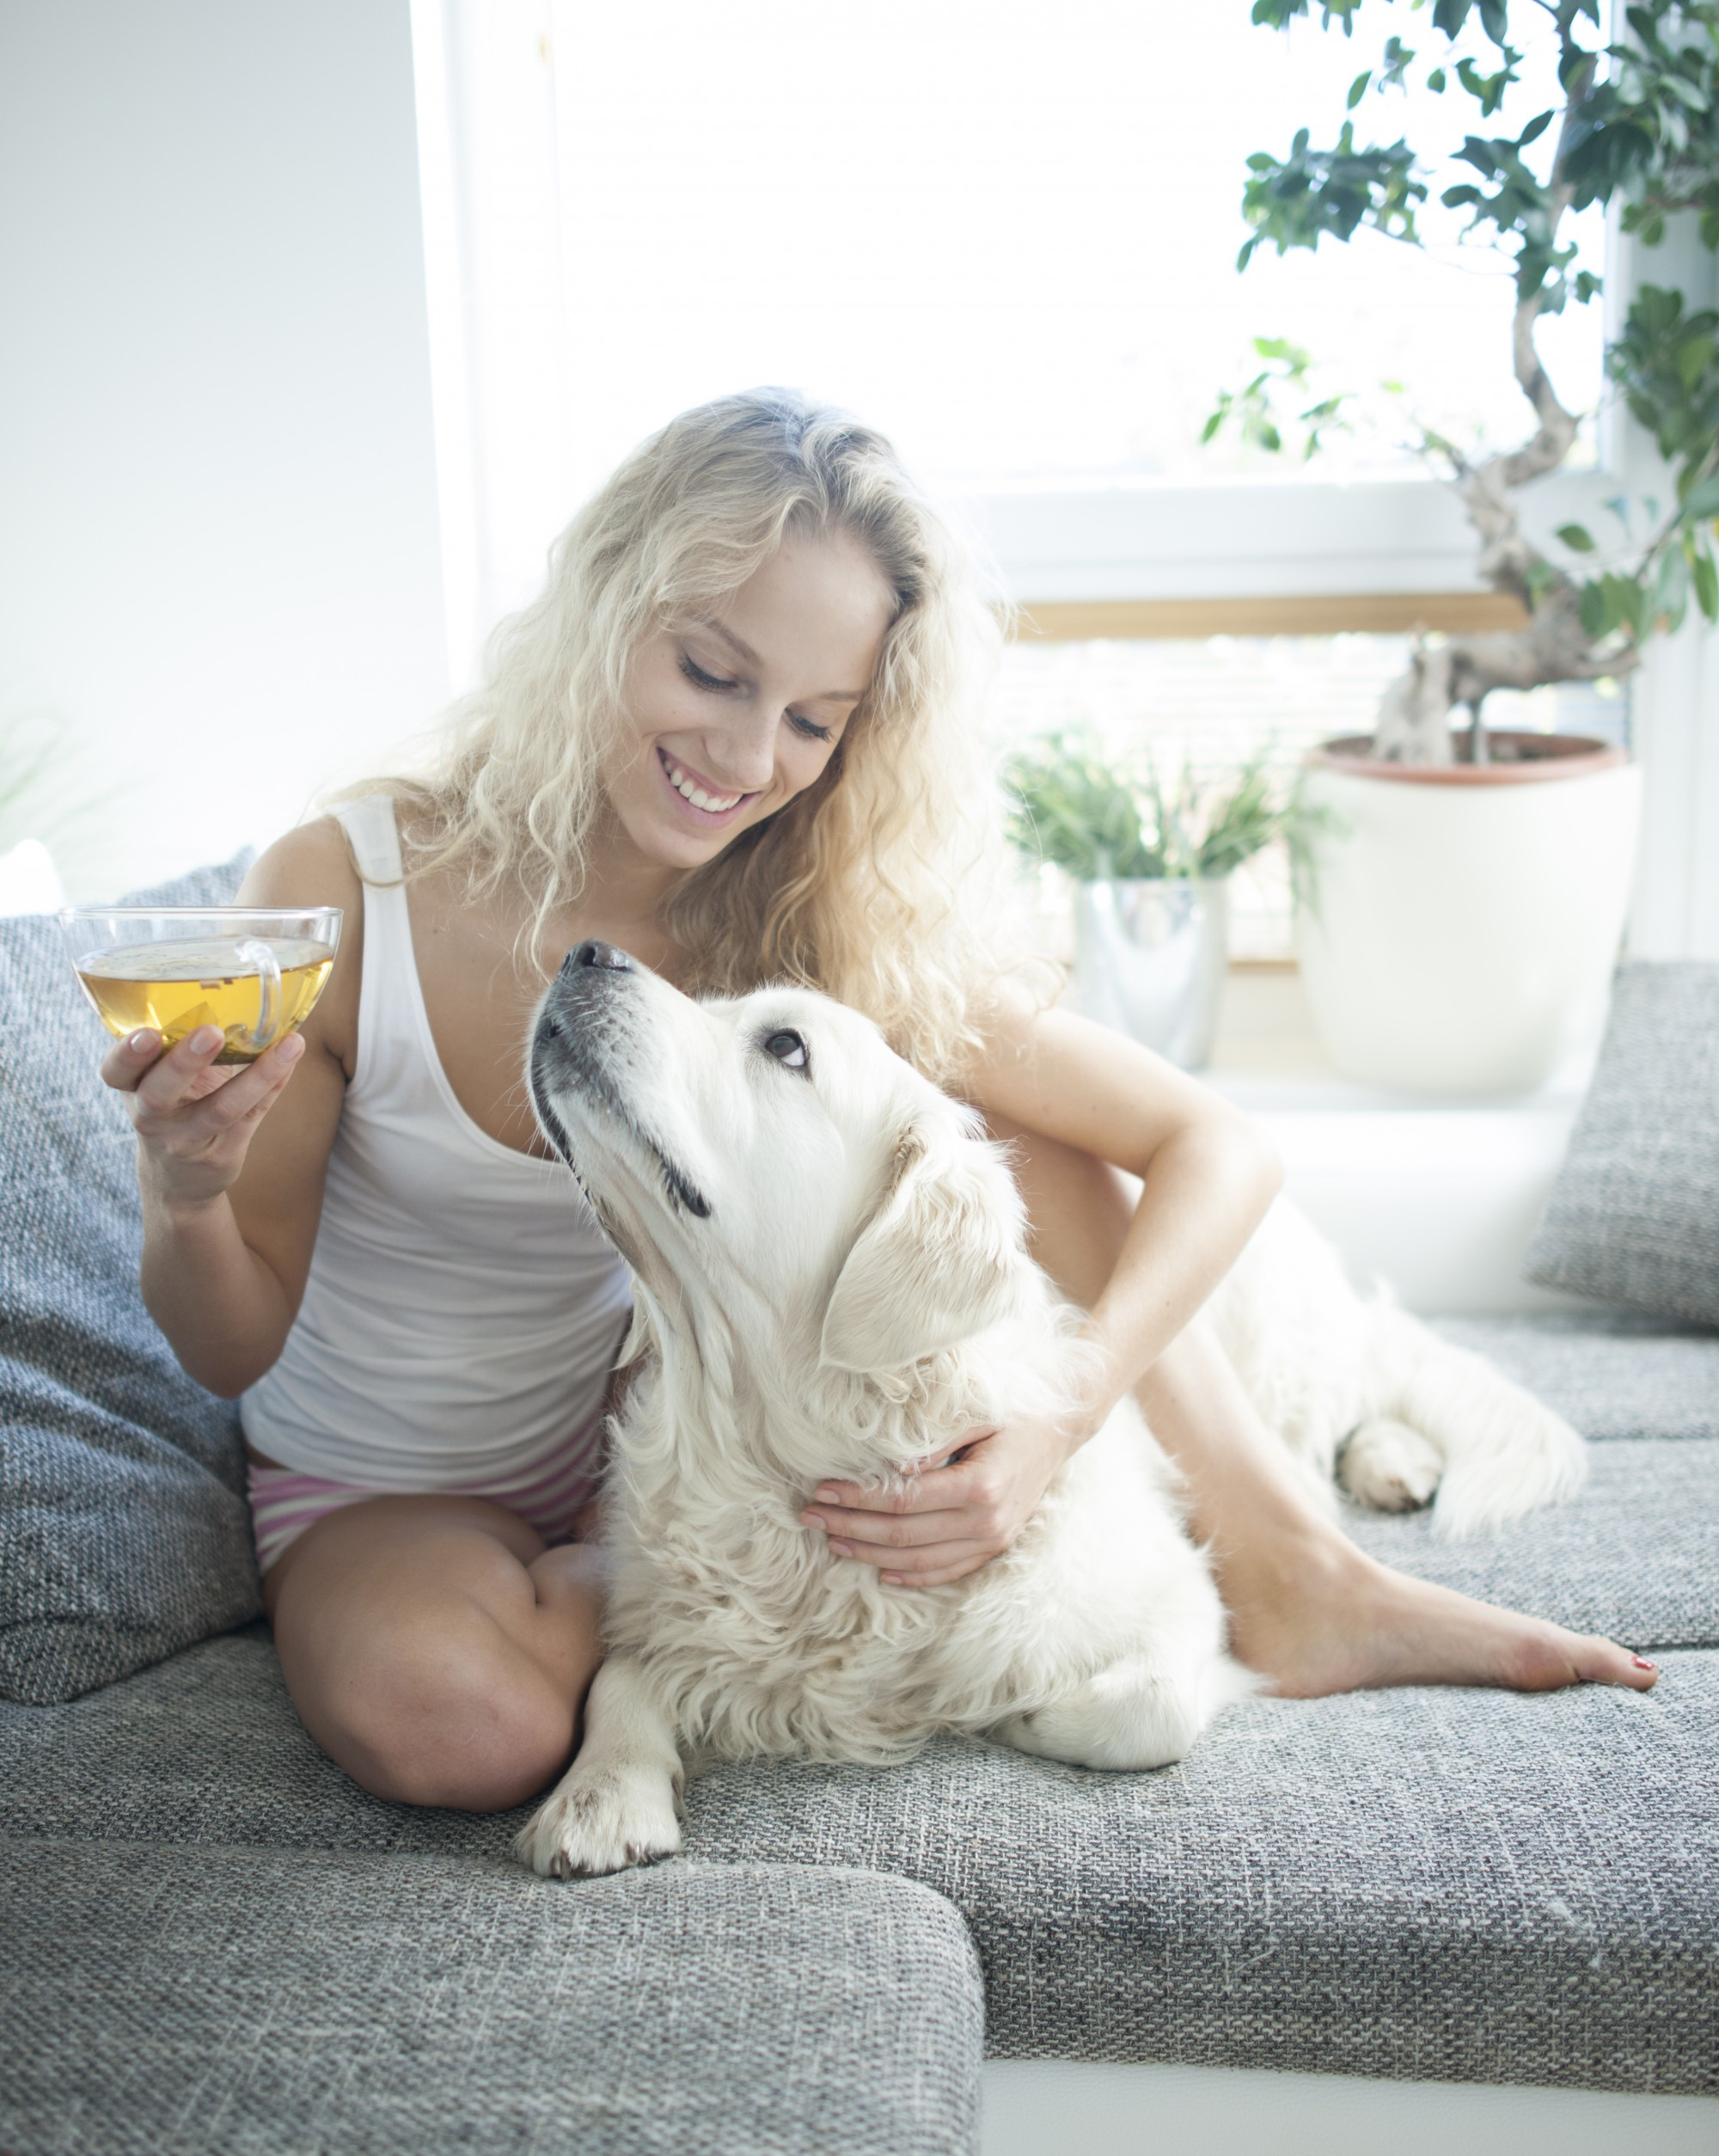 Beautiful woman holding tea cup while touching dog on sofa